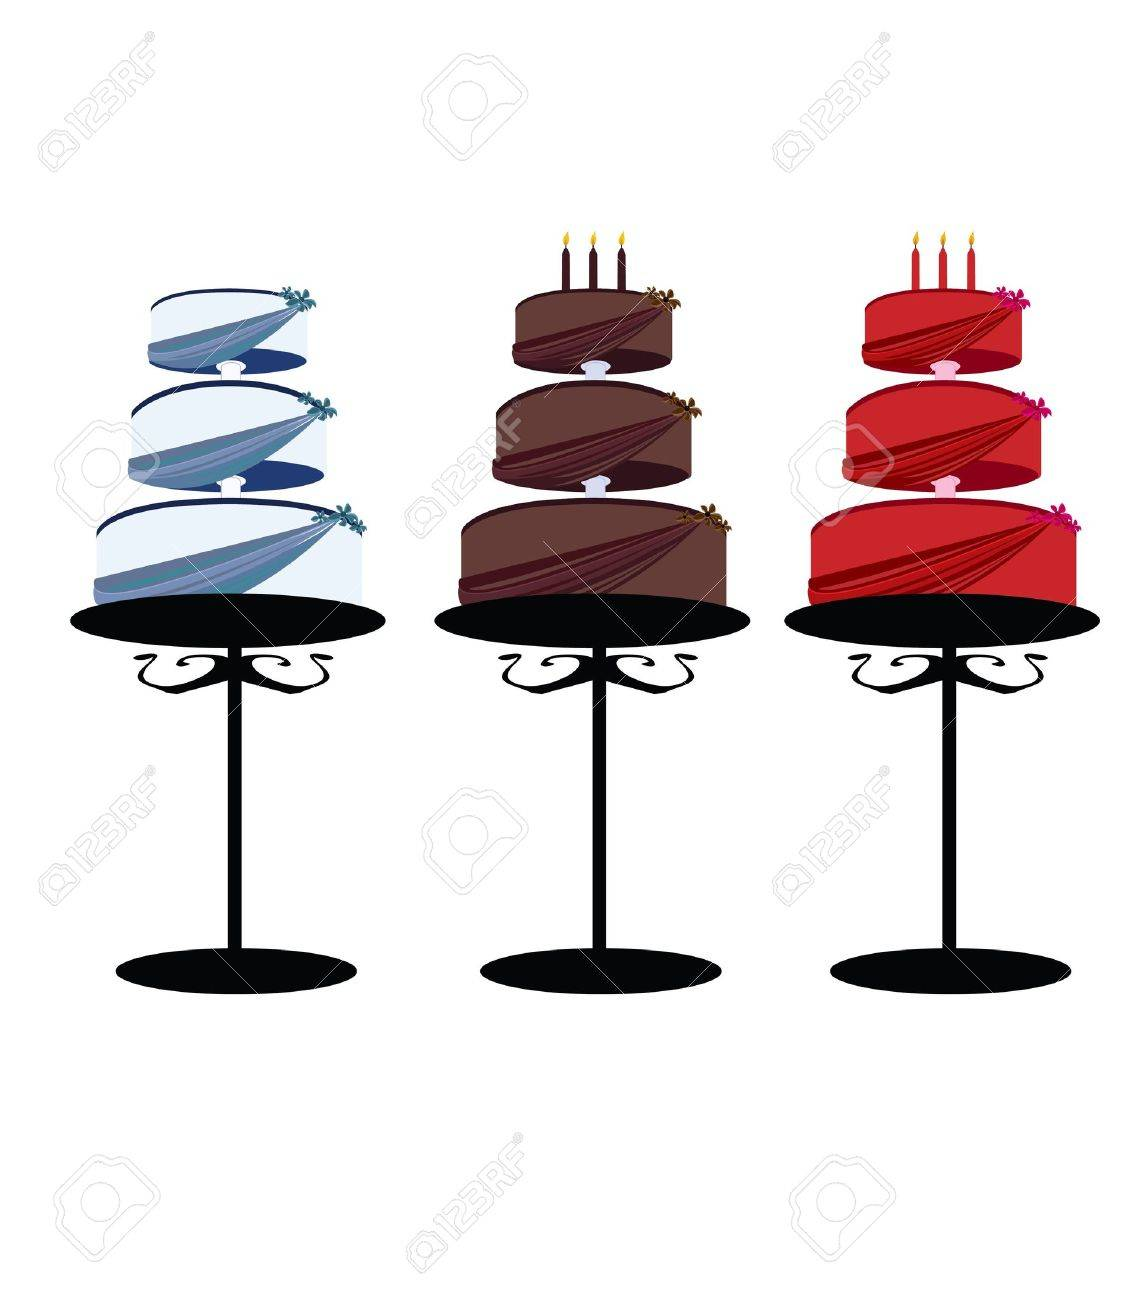 Multitier cakes with decorated layers on stands over a white background - 7315093